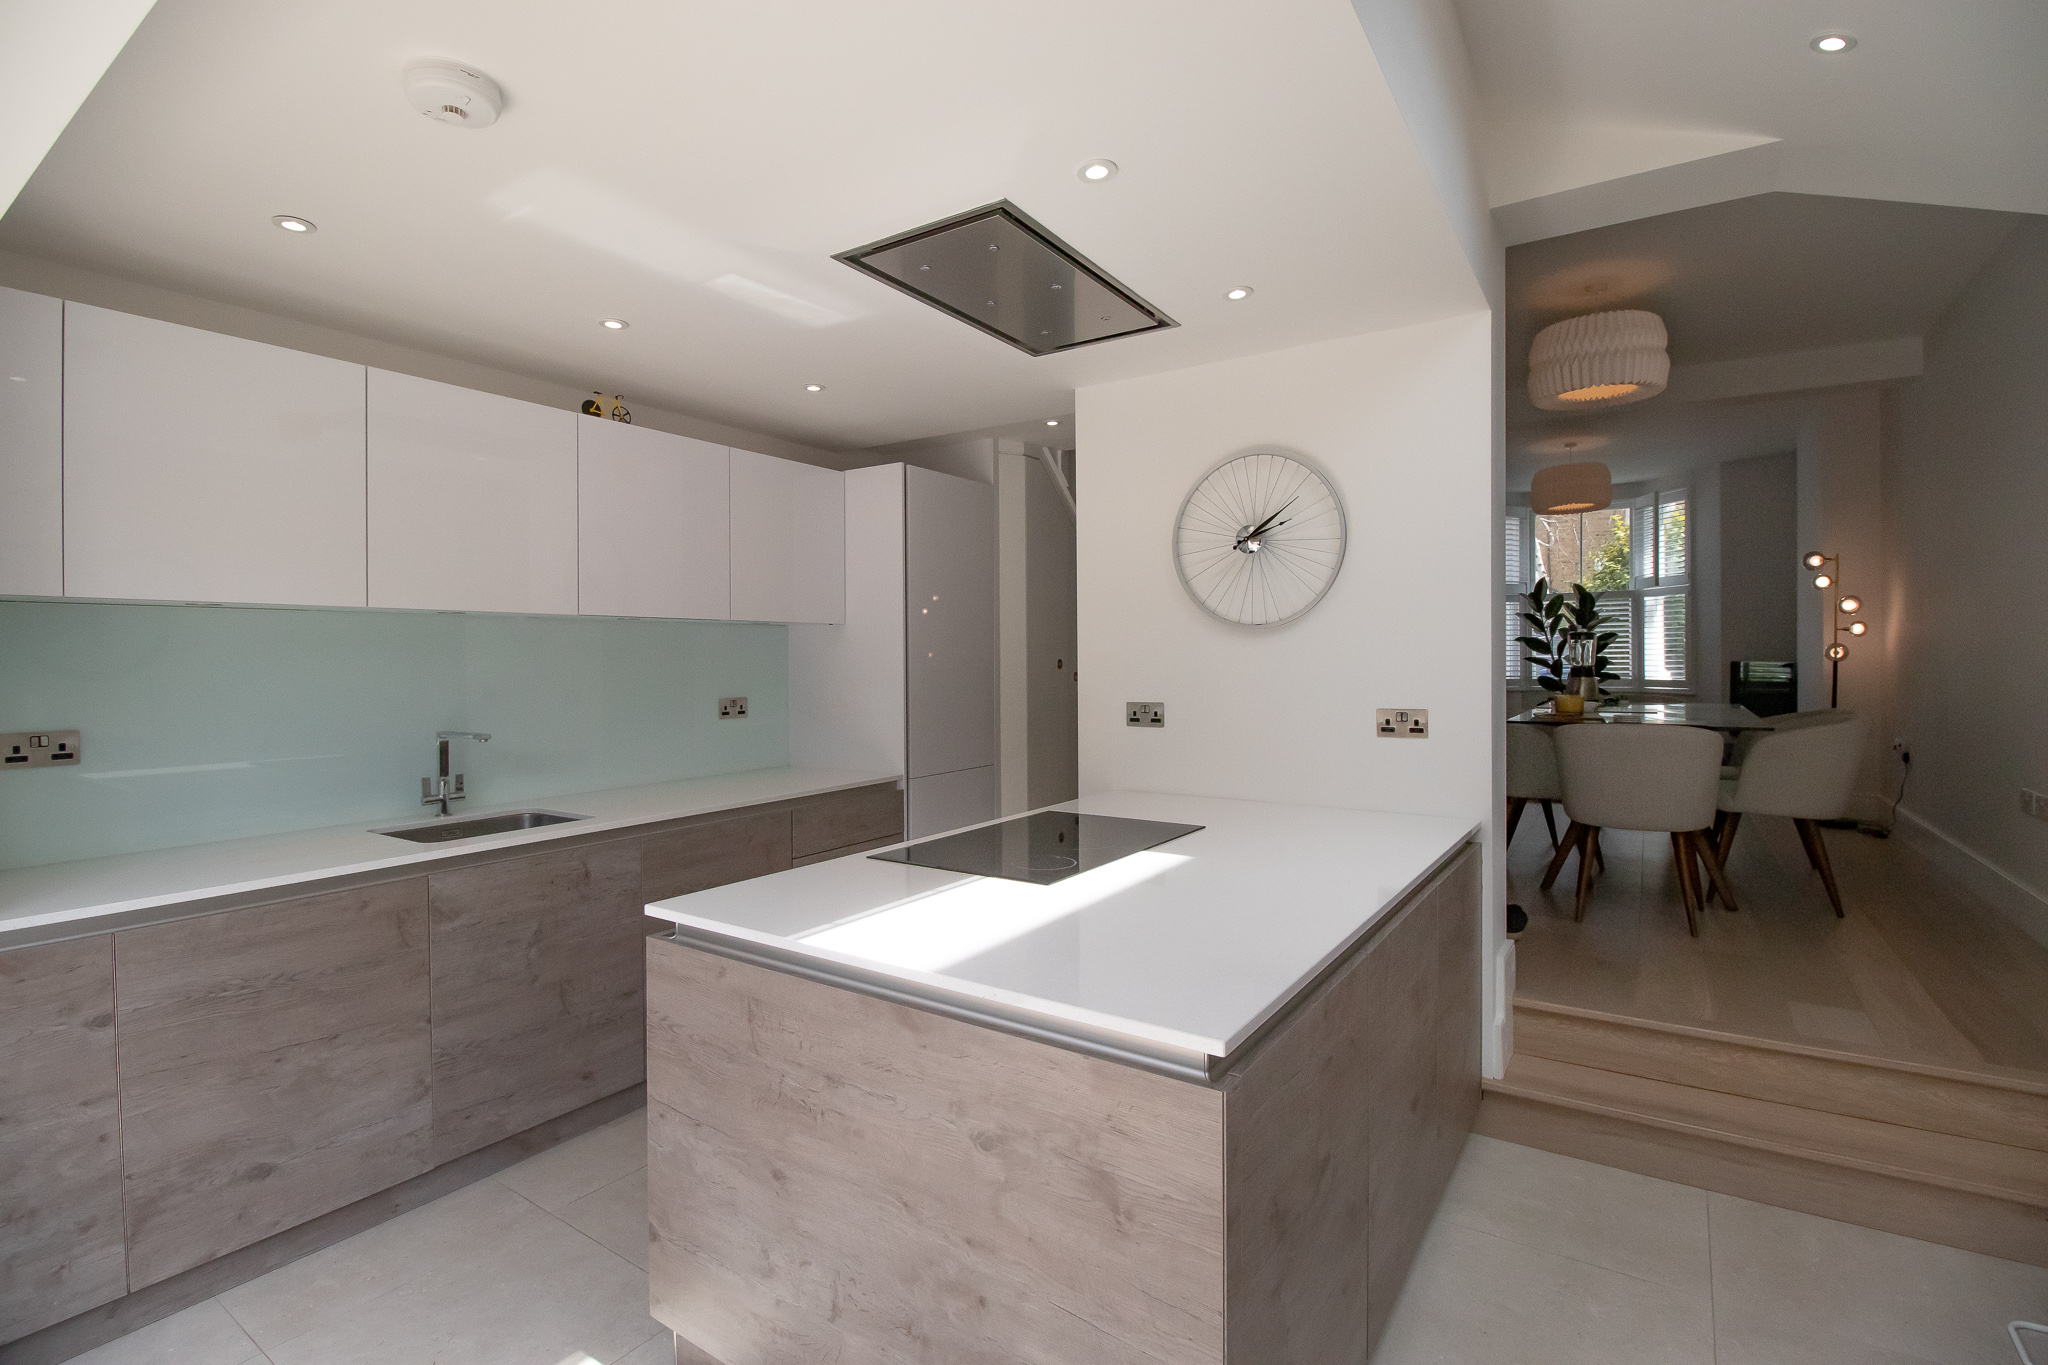 WHITE KITCHEN, WOOD, EXTRACTOR FAN, INDUCTION HOB, RENOVATION, KITCHEN REFURBISHMENT.jpg